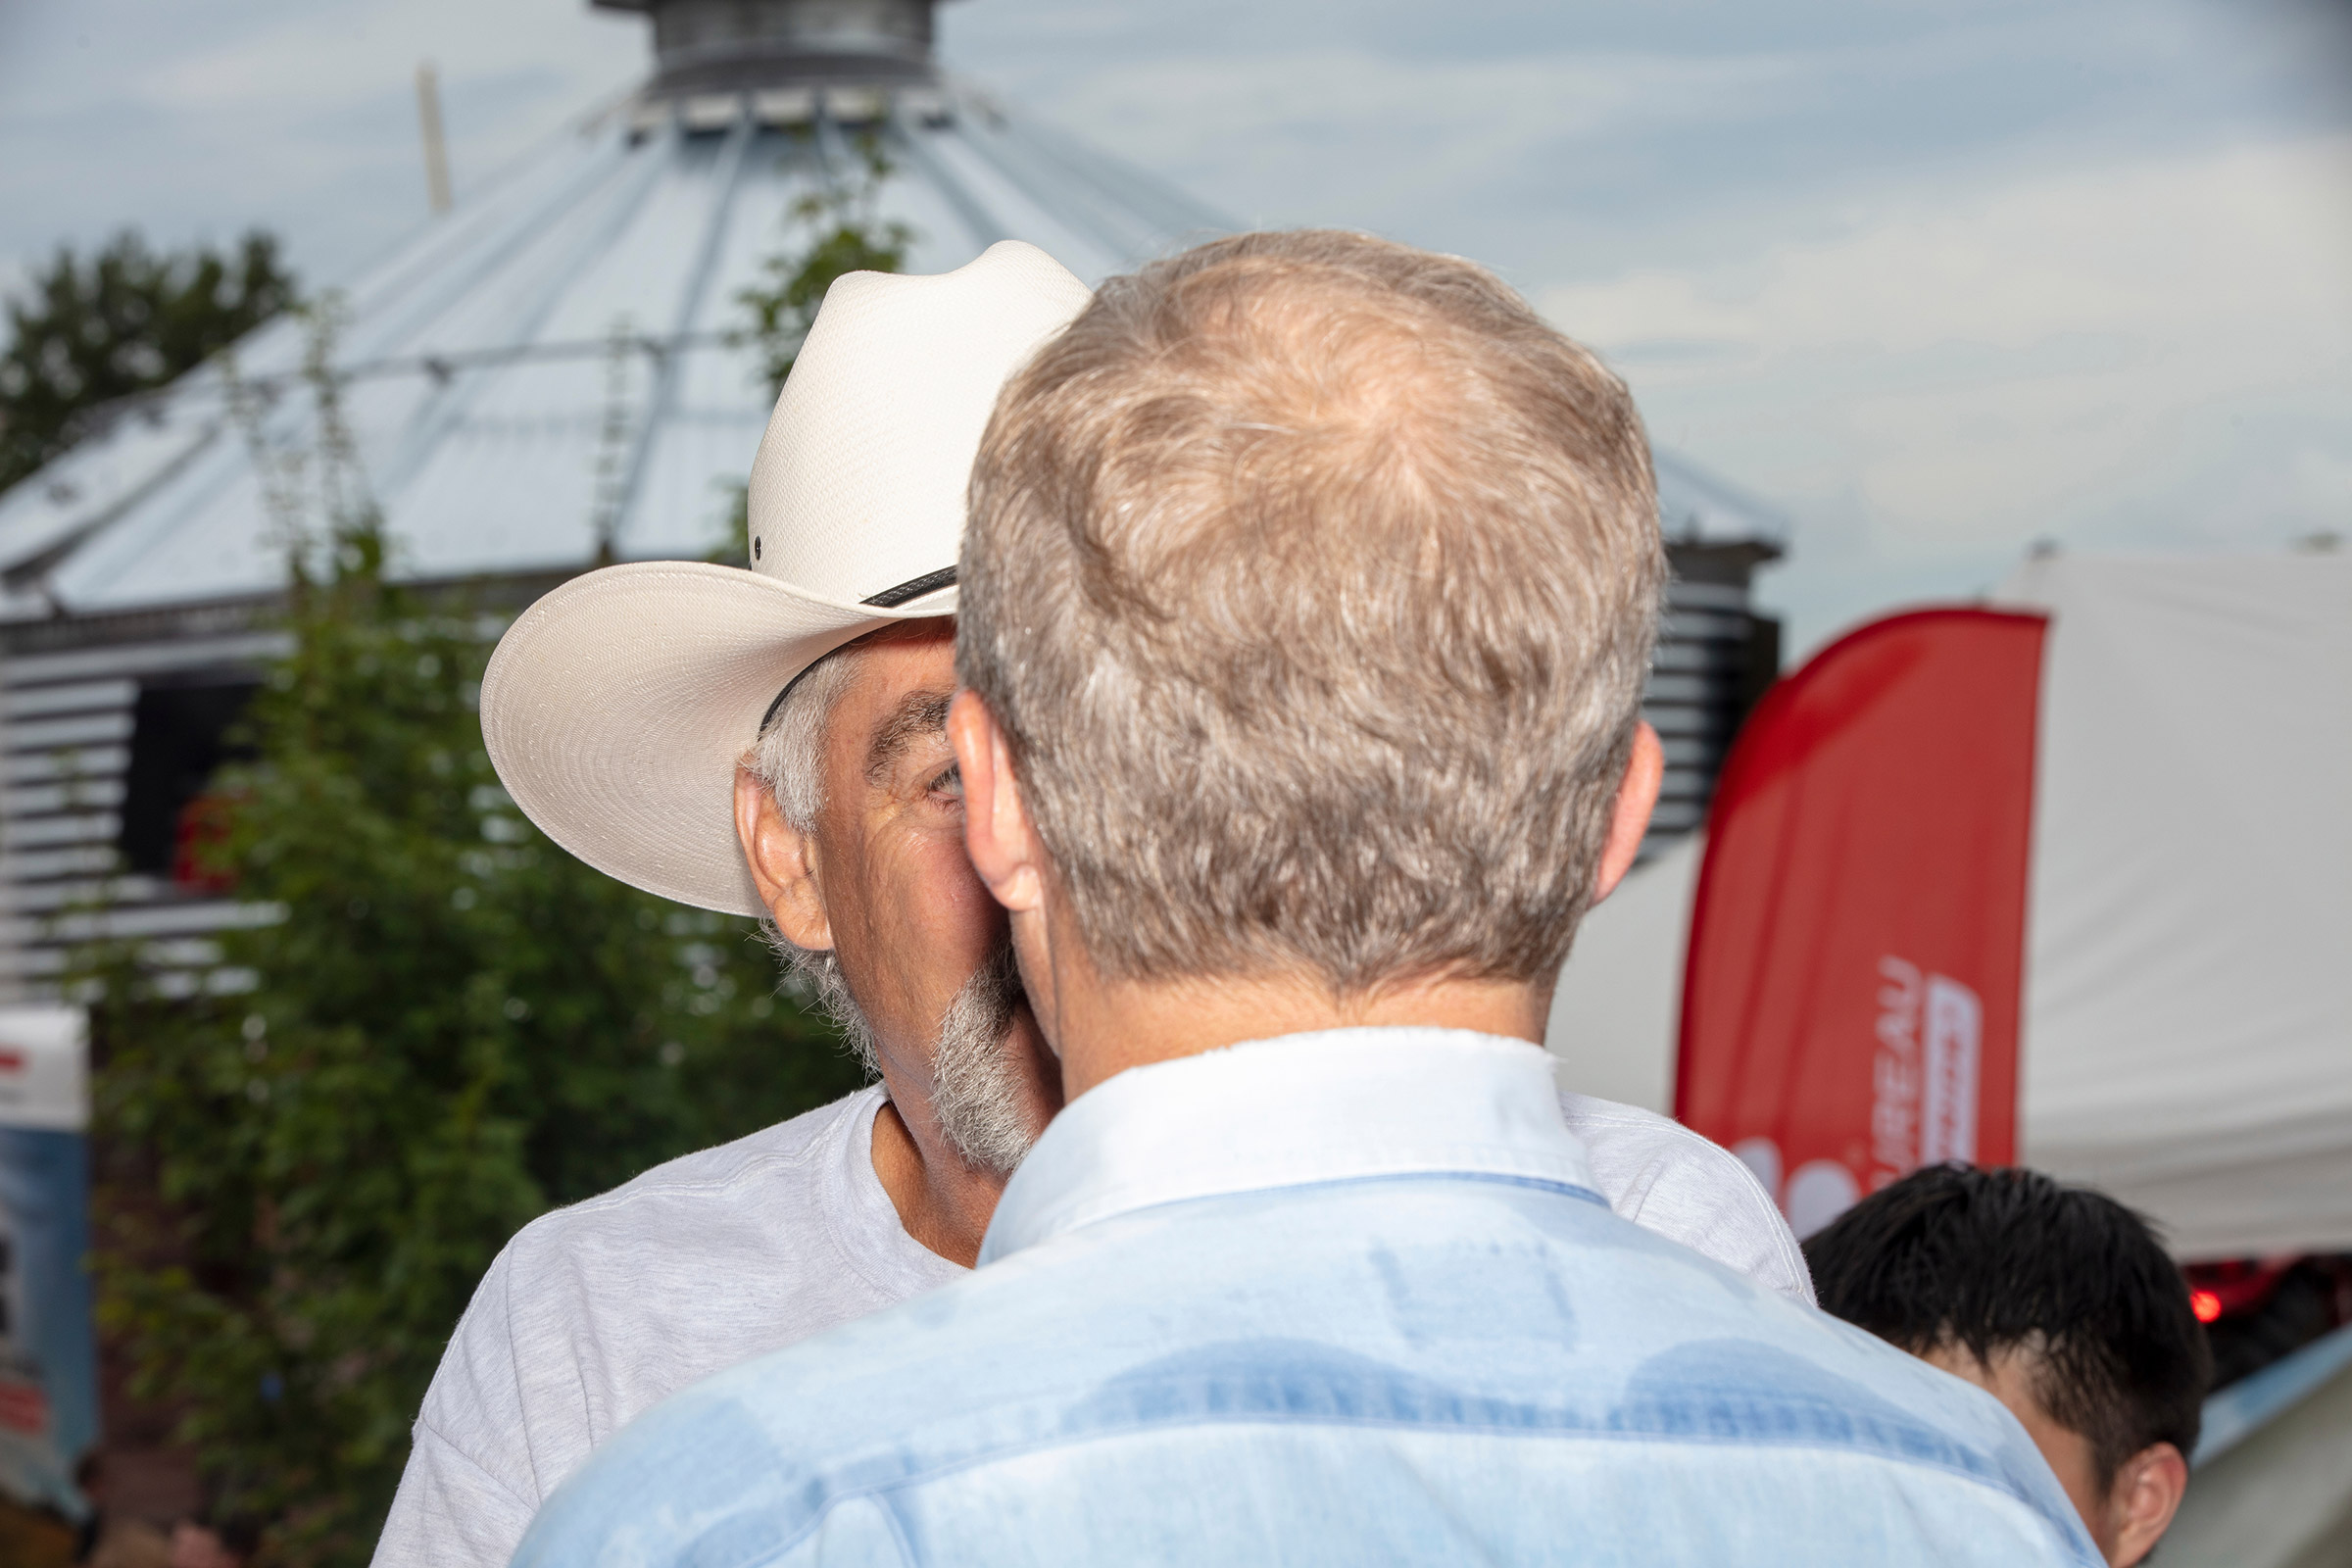 Democratic presidential candidate Tom Steyer speaks with farmer Kyle Gilchrist of Douds, Iowa on Aug. 11. Gilchrist was concerned about how an increasing minimum wage would affect him paying his farm workers.